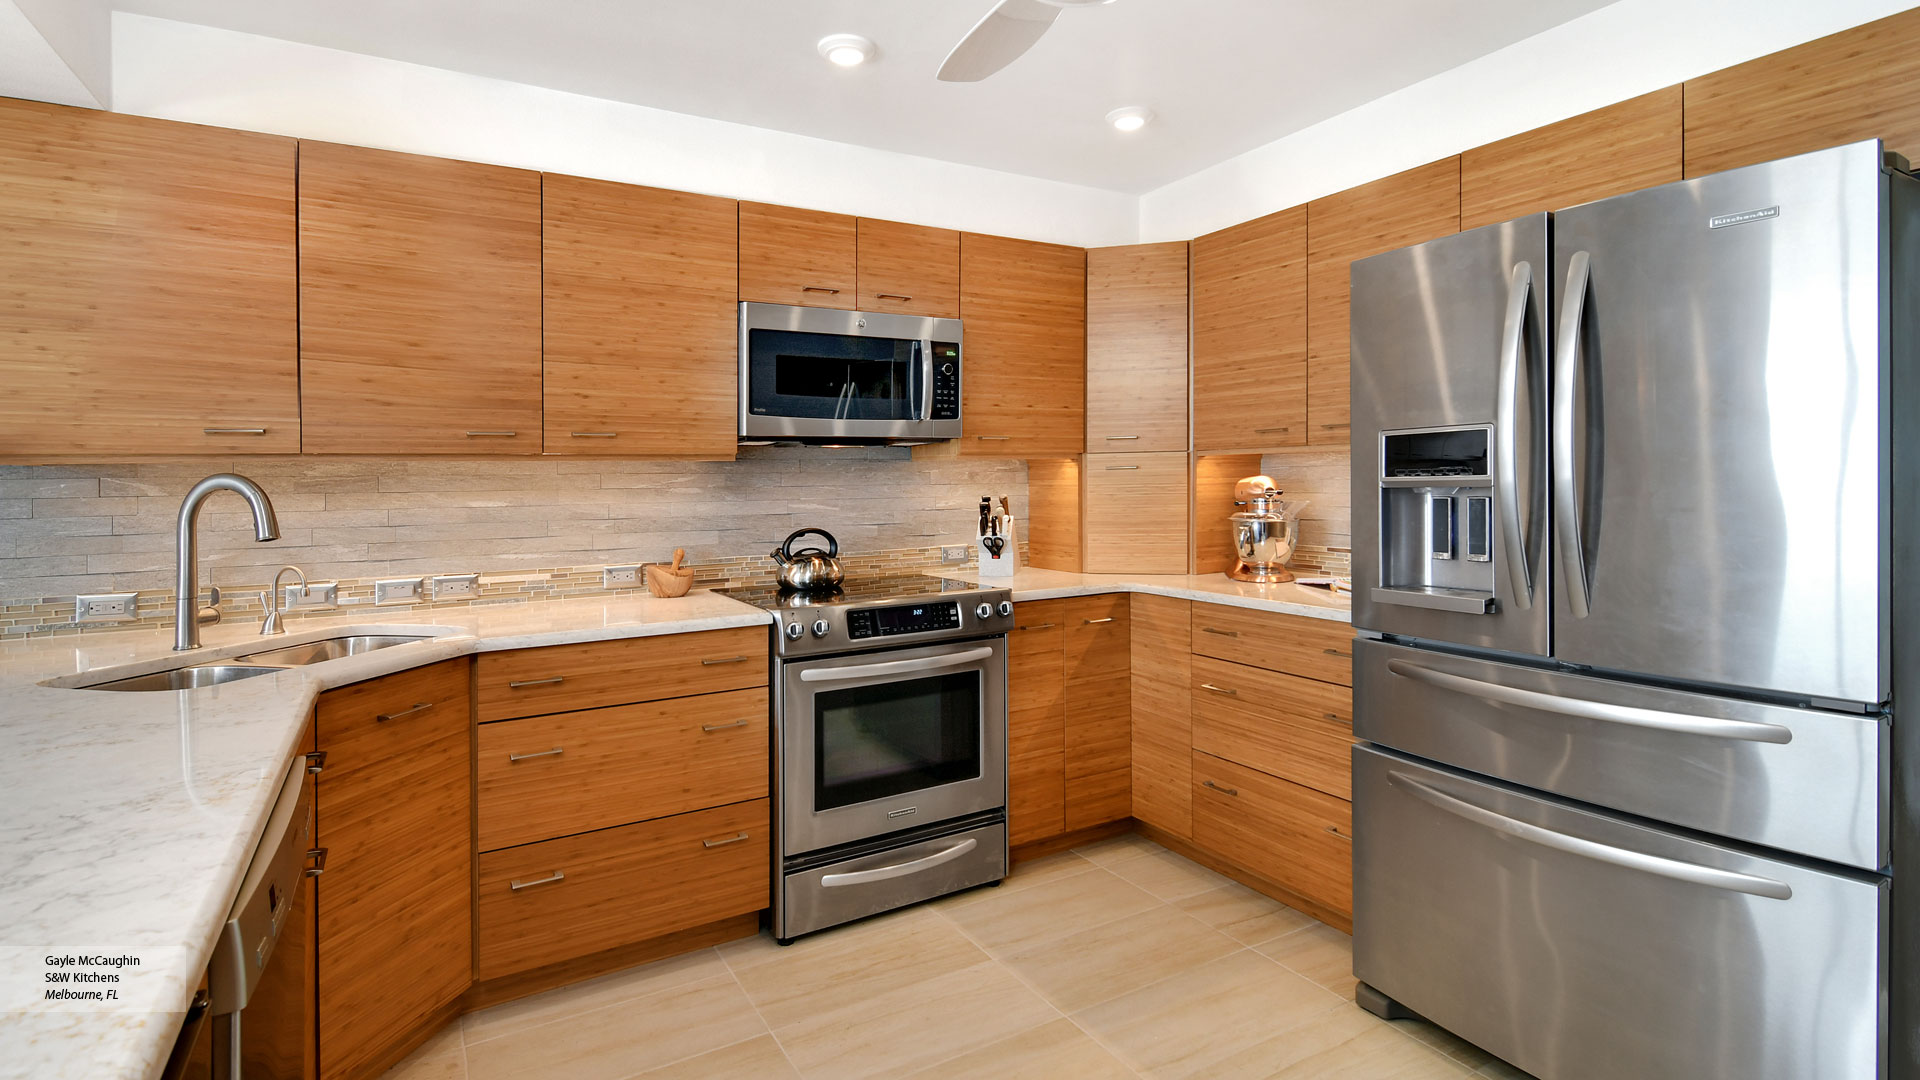 bamboo kitchen cabinets the latest gadgets natural omega cabinetry design style room contemporary